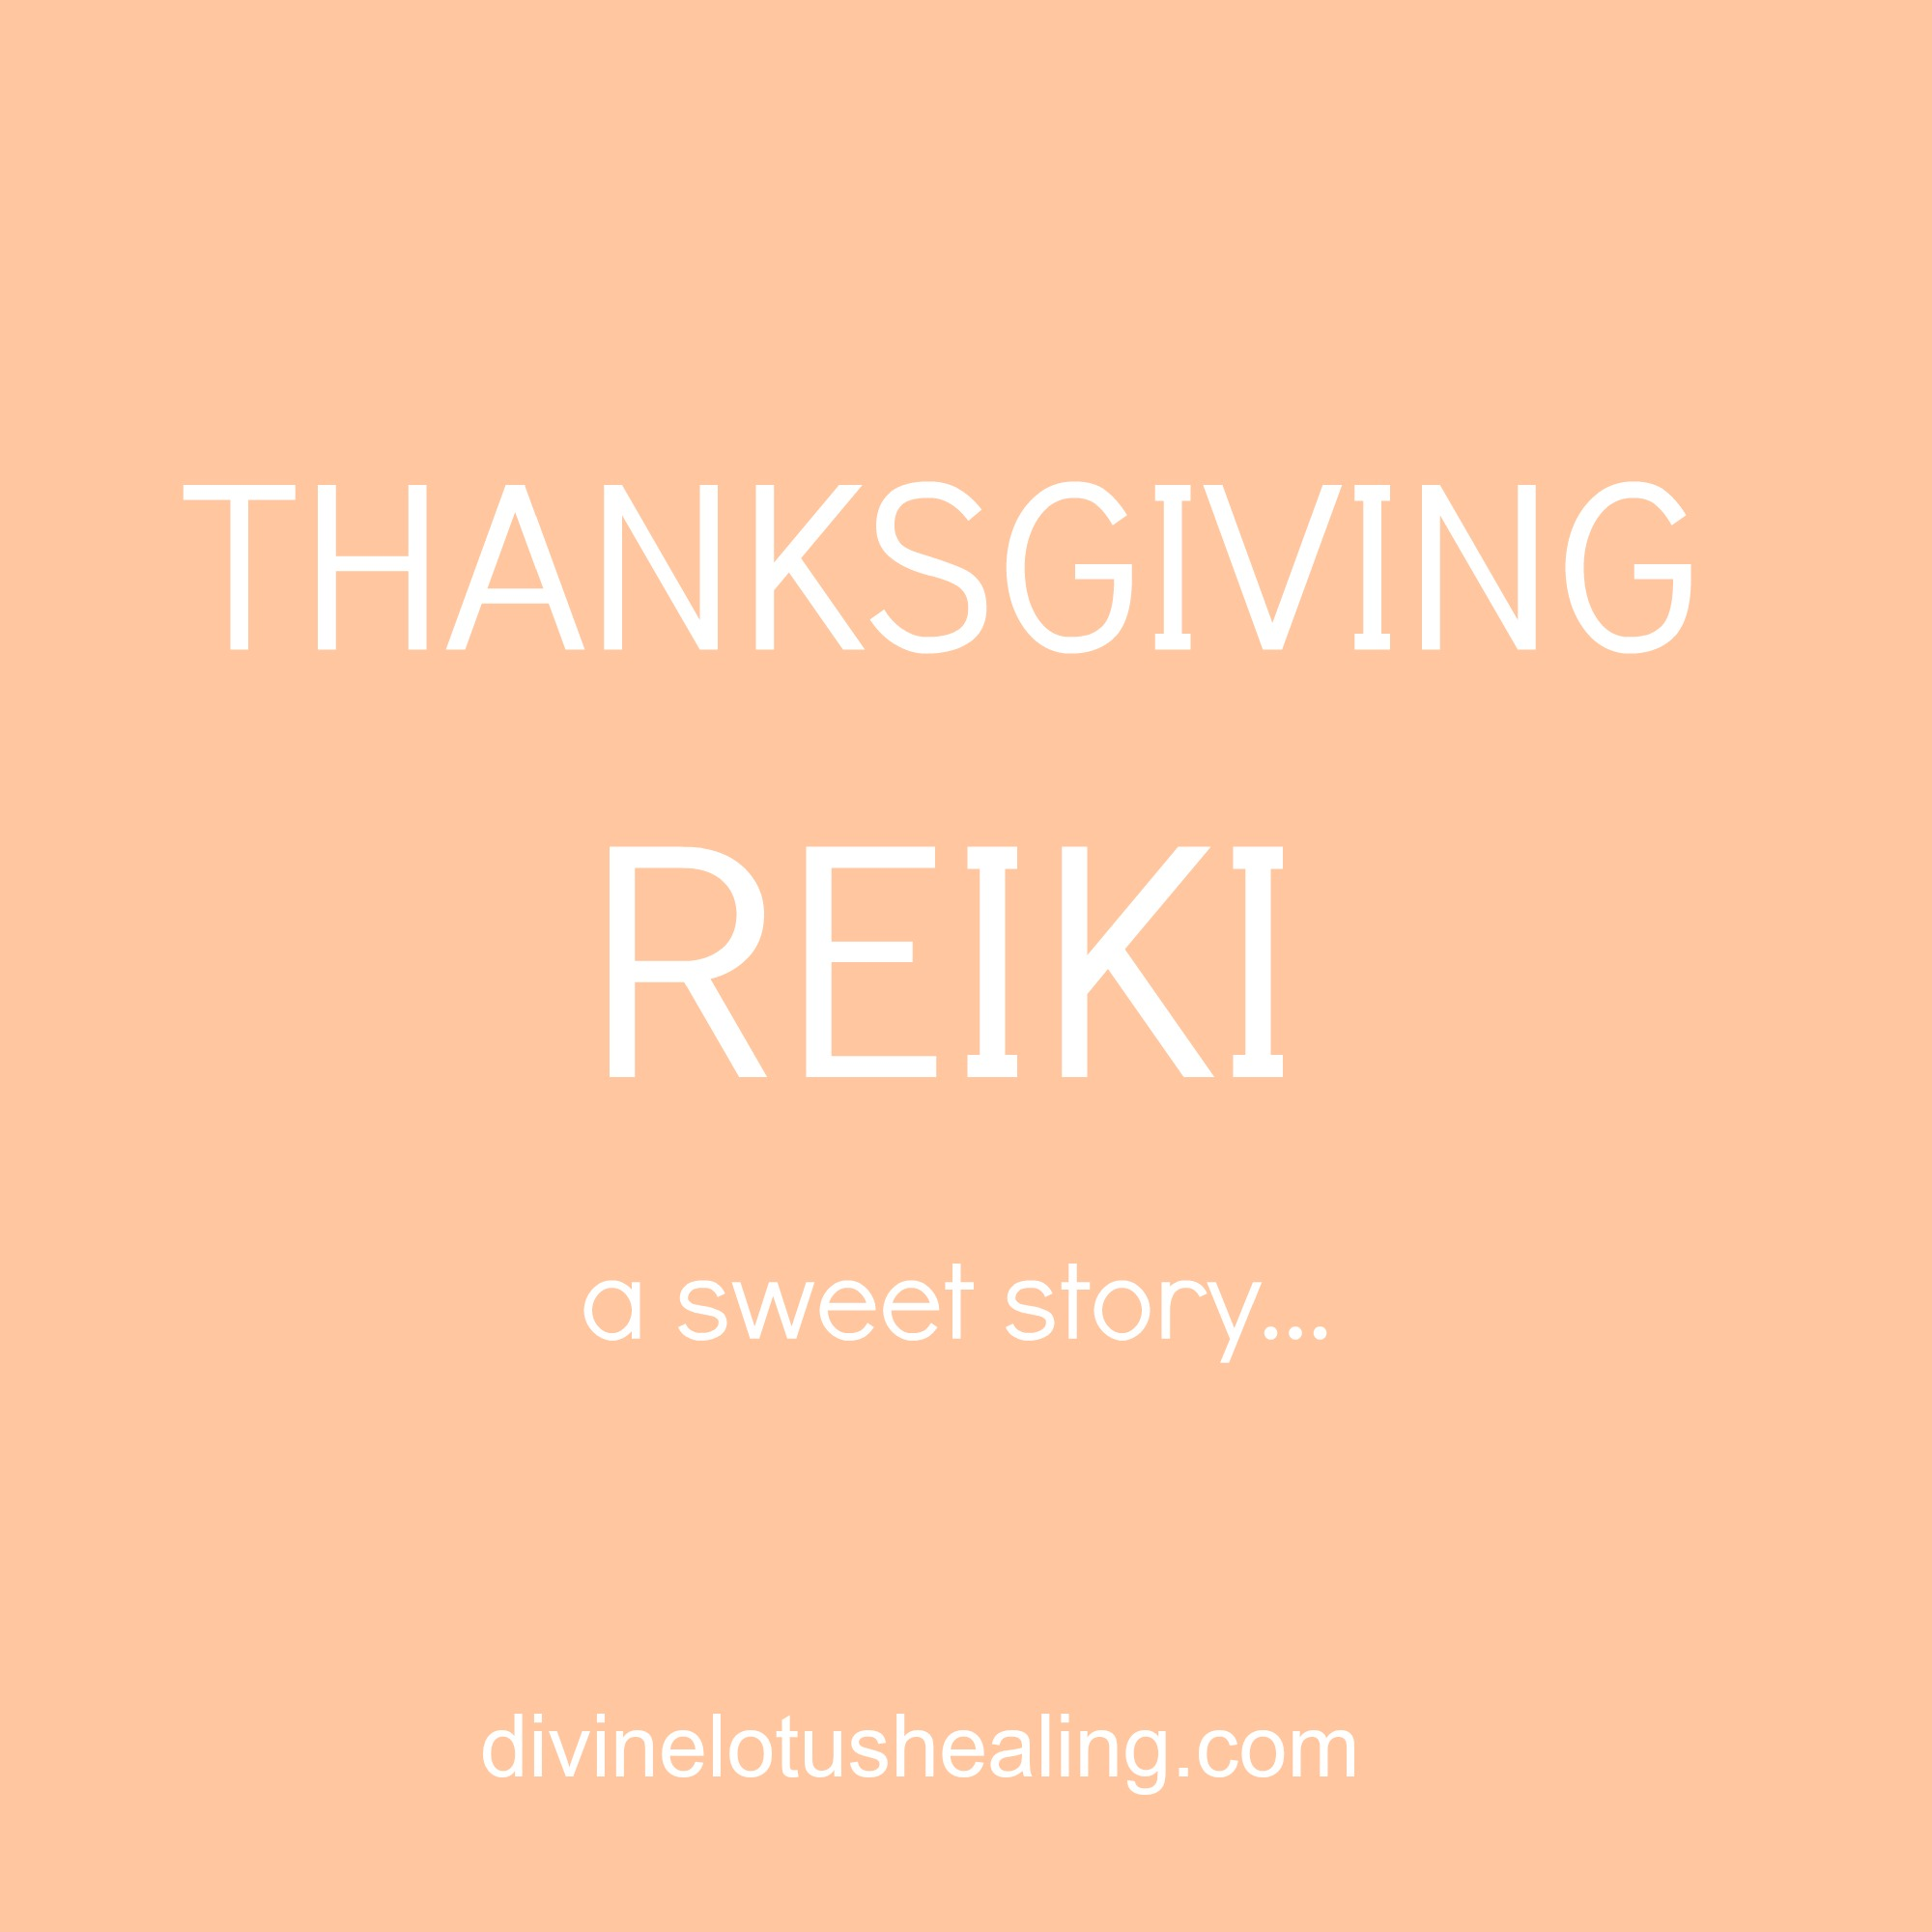 Divine Lotus Healing | Thanksgiving Reiki